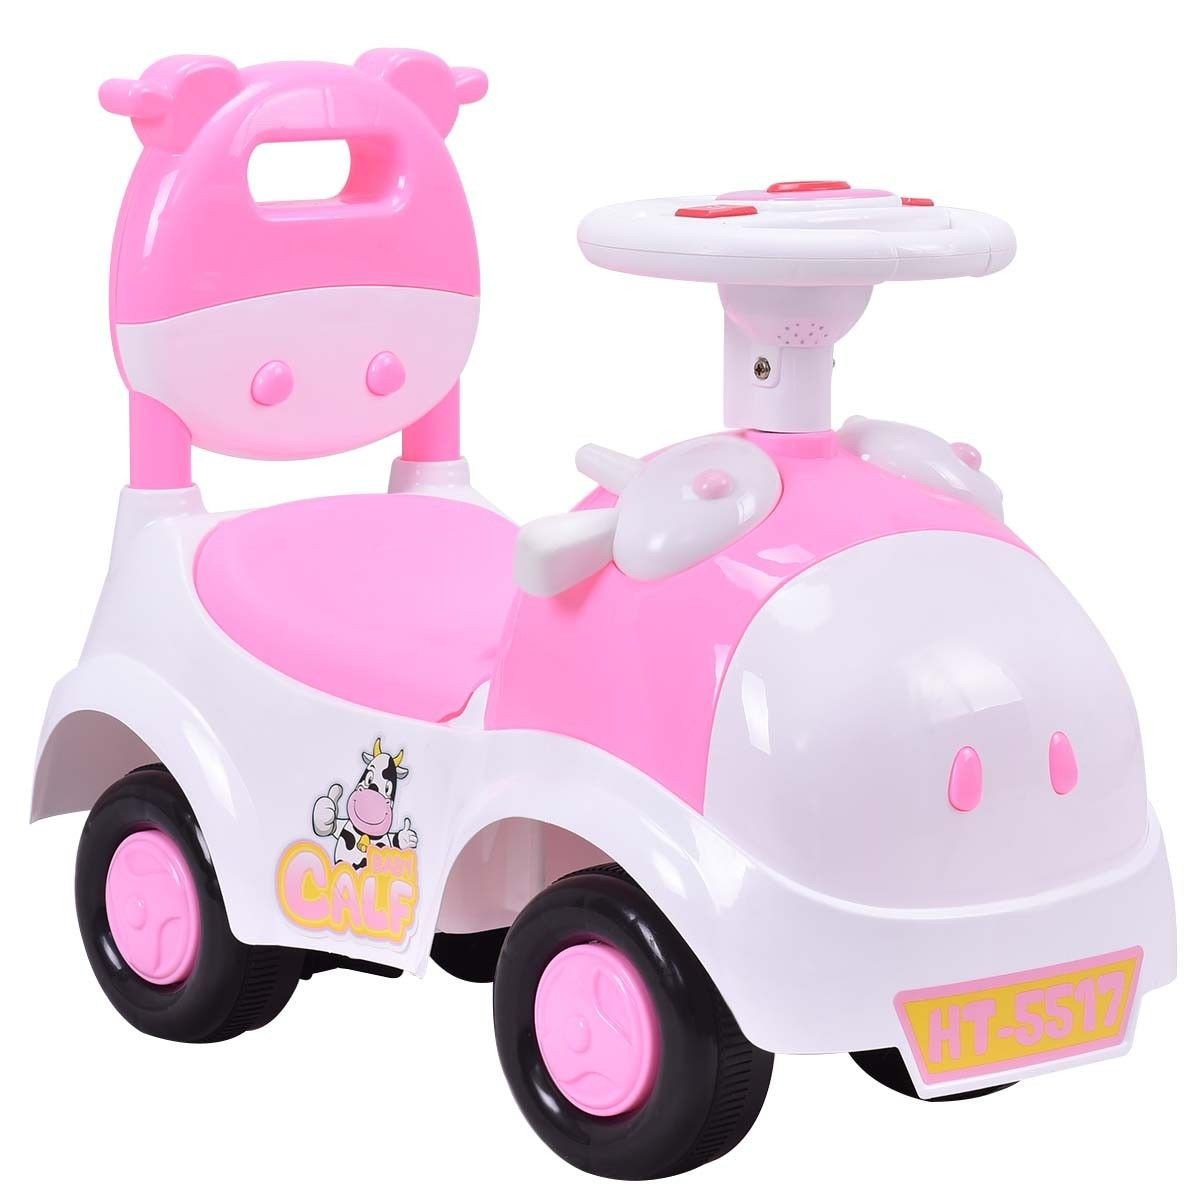 Sliding Pushing Children Car with Horn and Music Toy Car